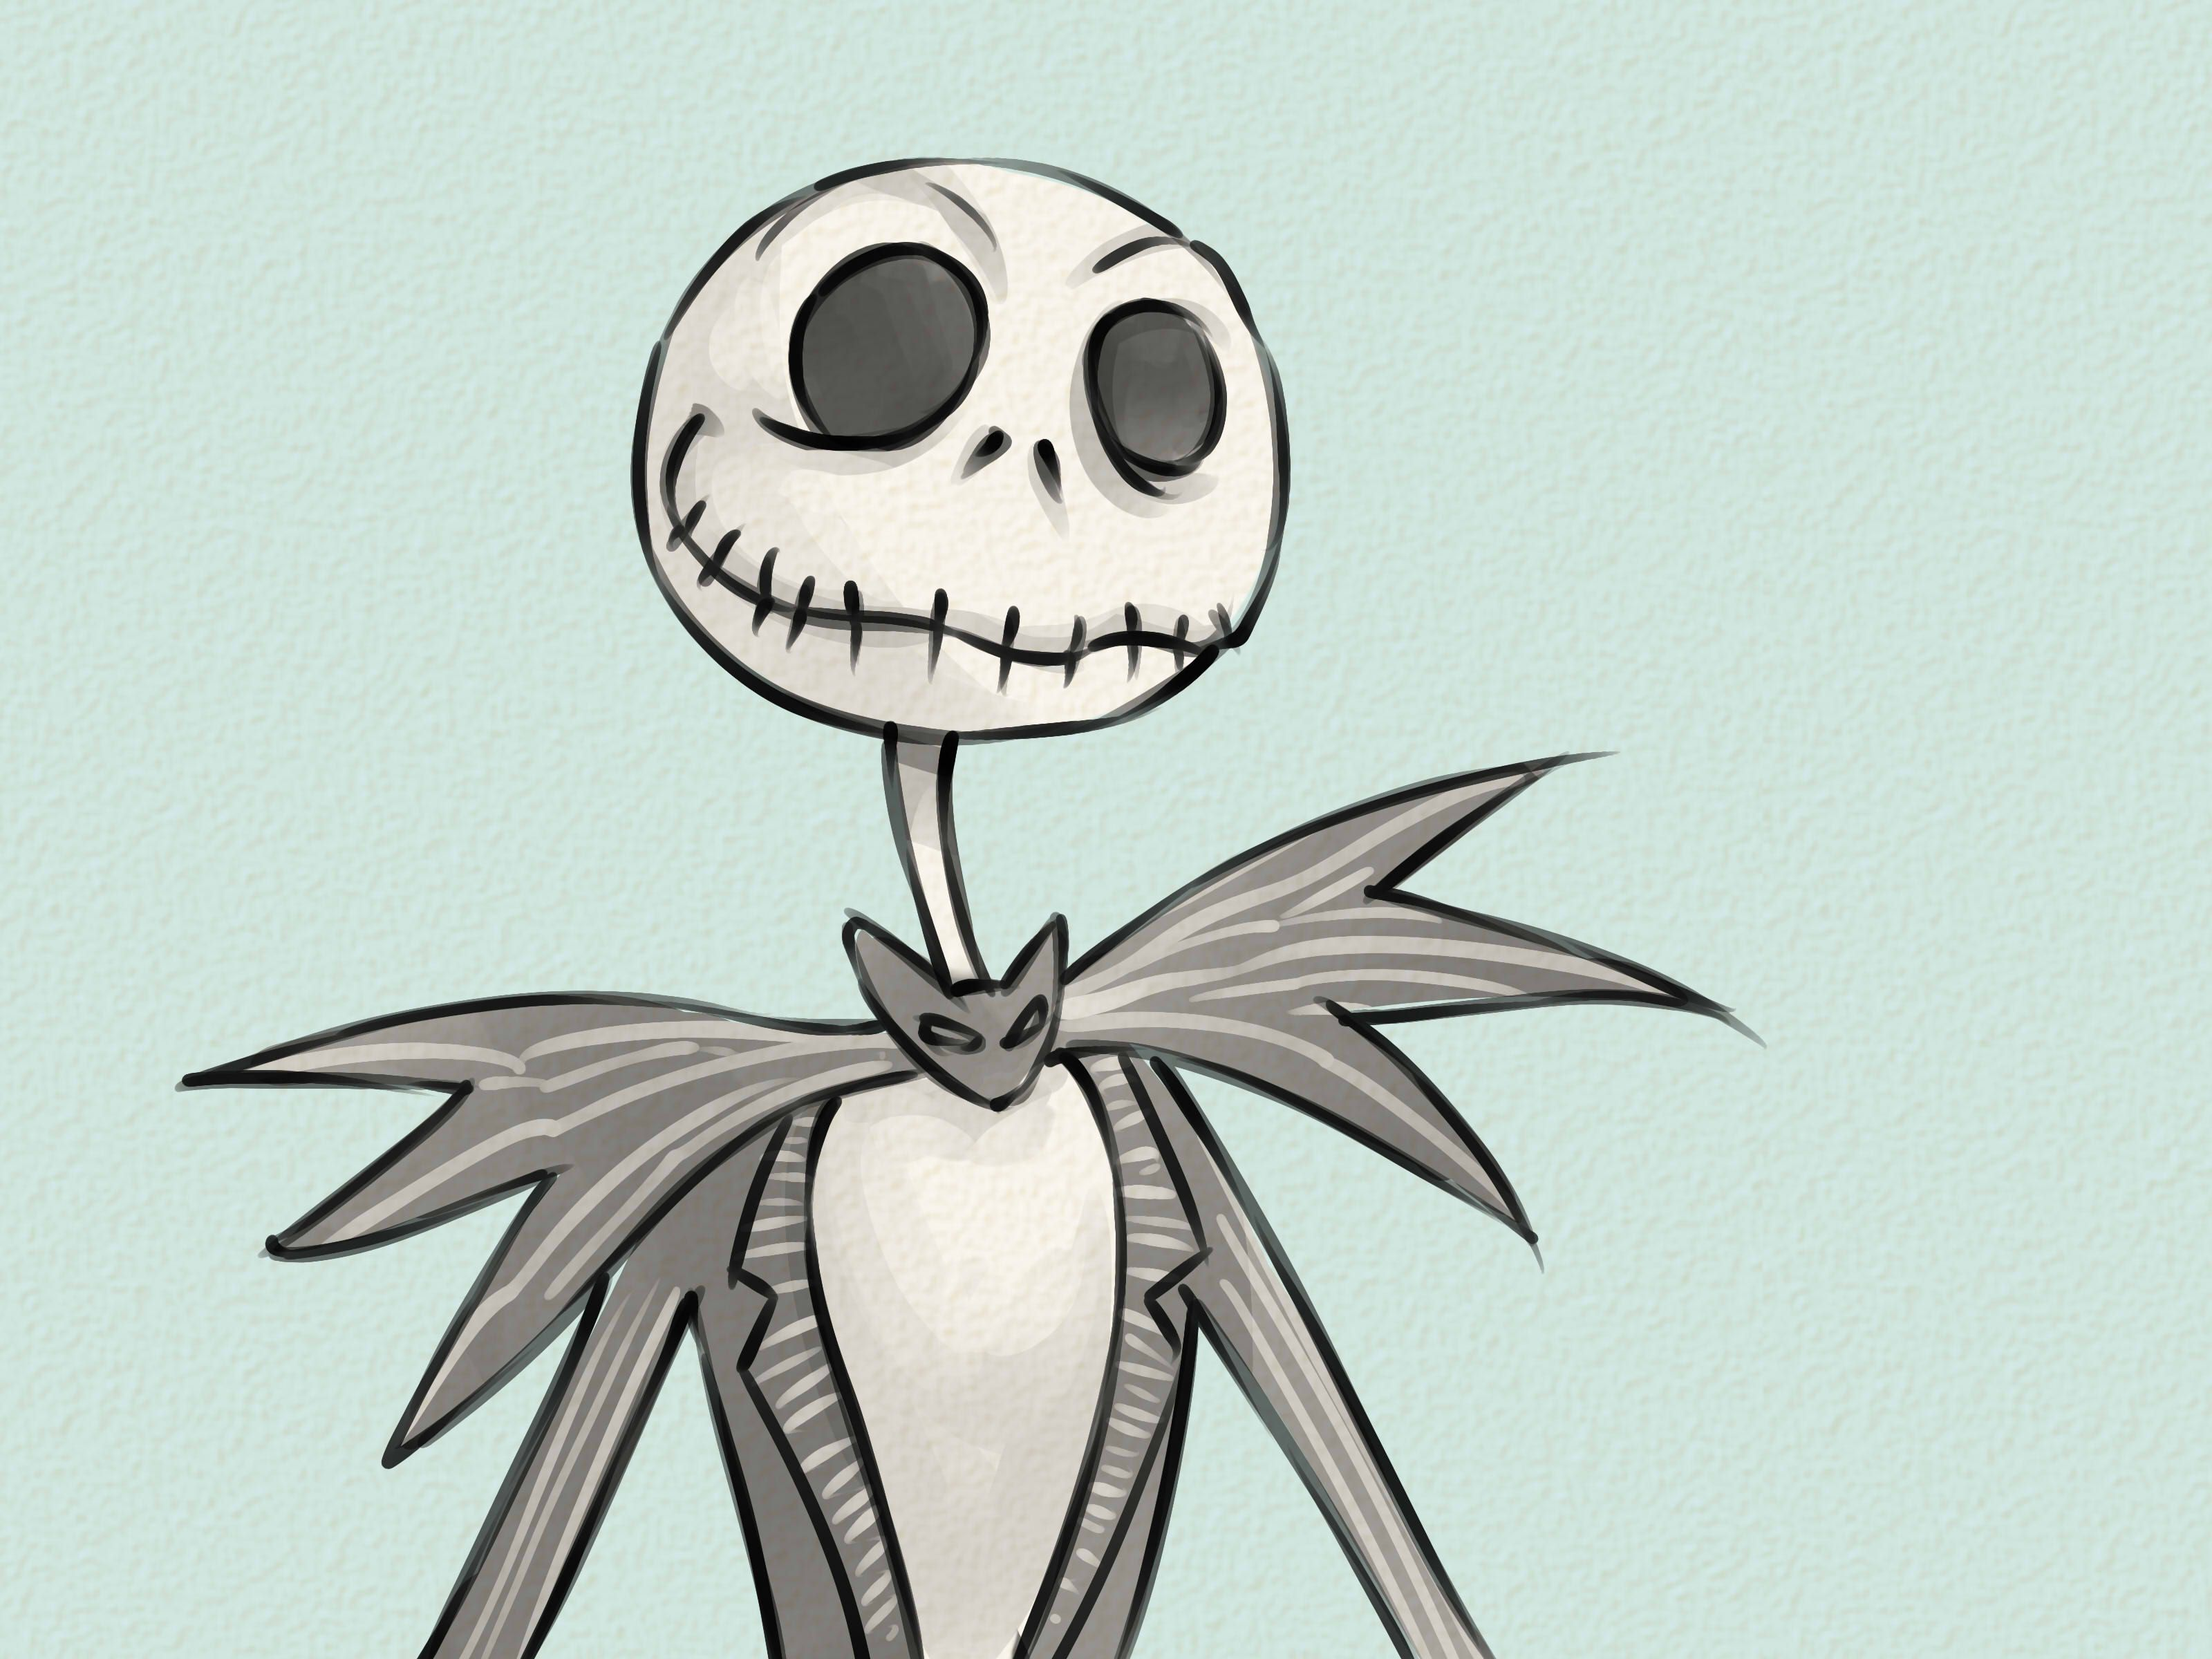 Diy jack skellington s body nightmare before christmas youtube - Draw Jack Skellington